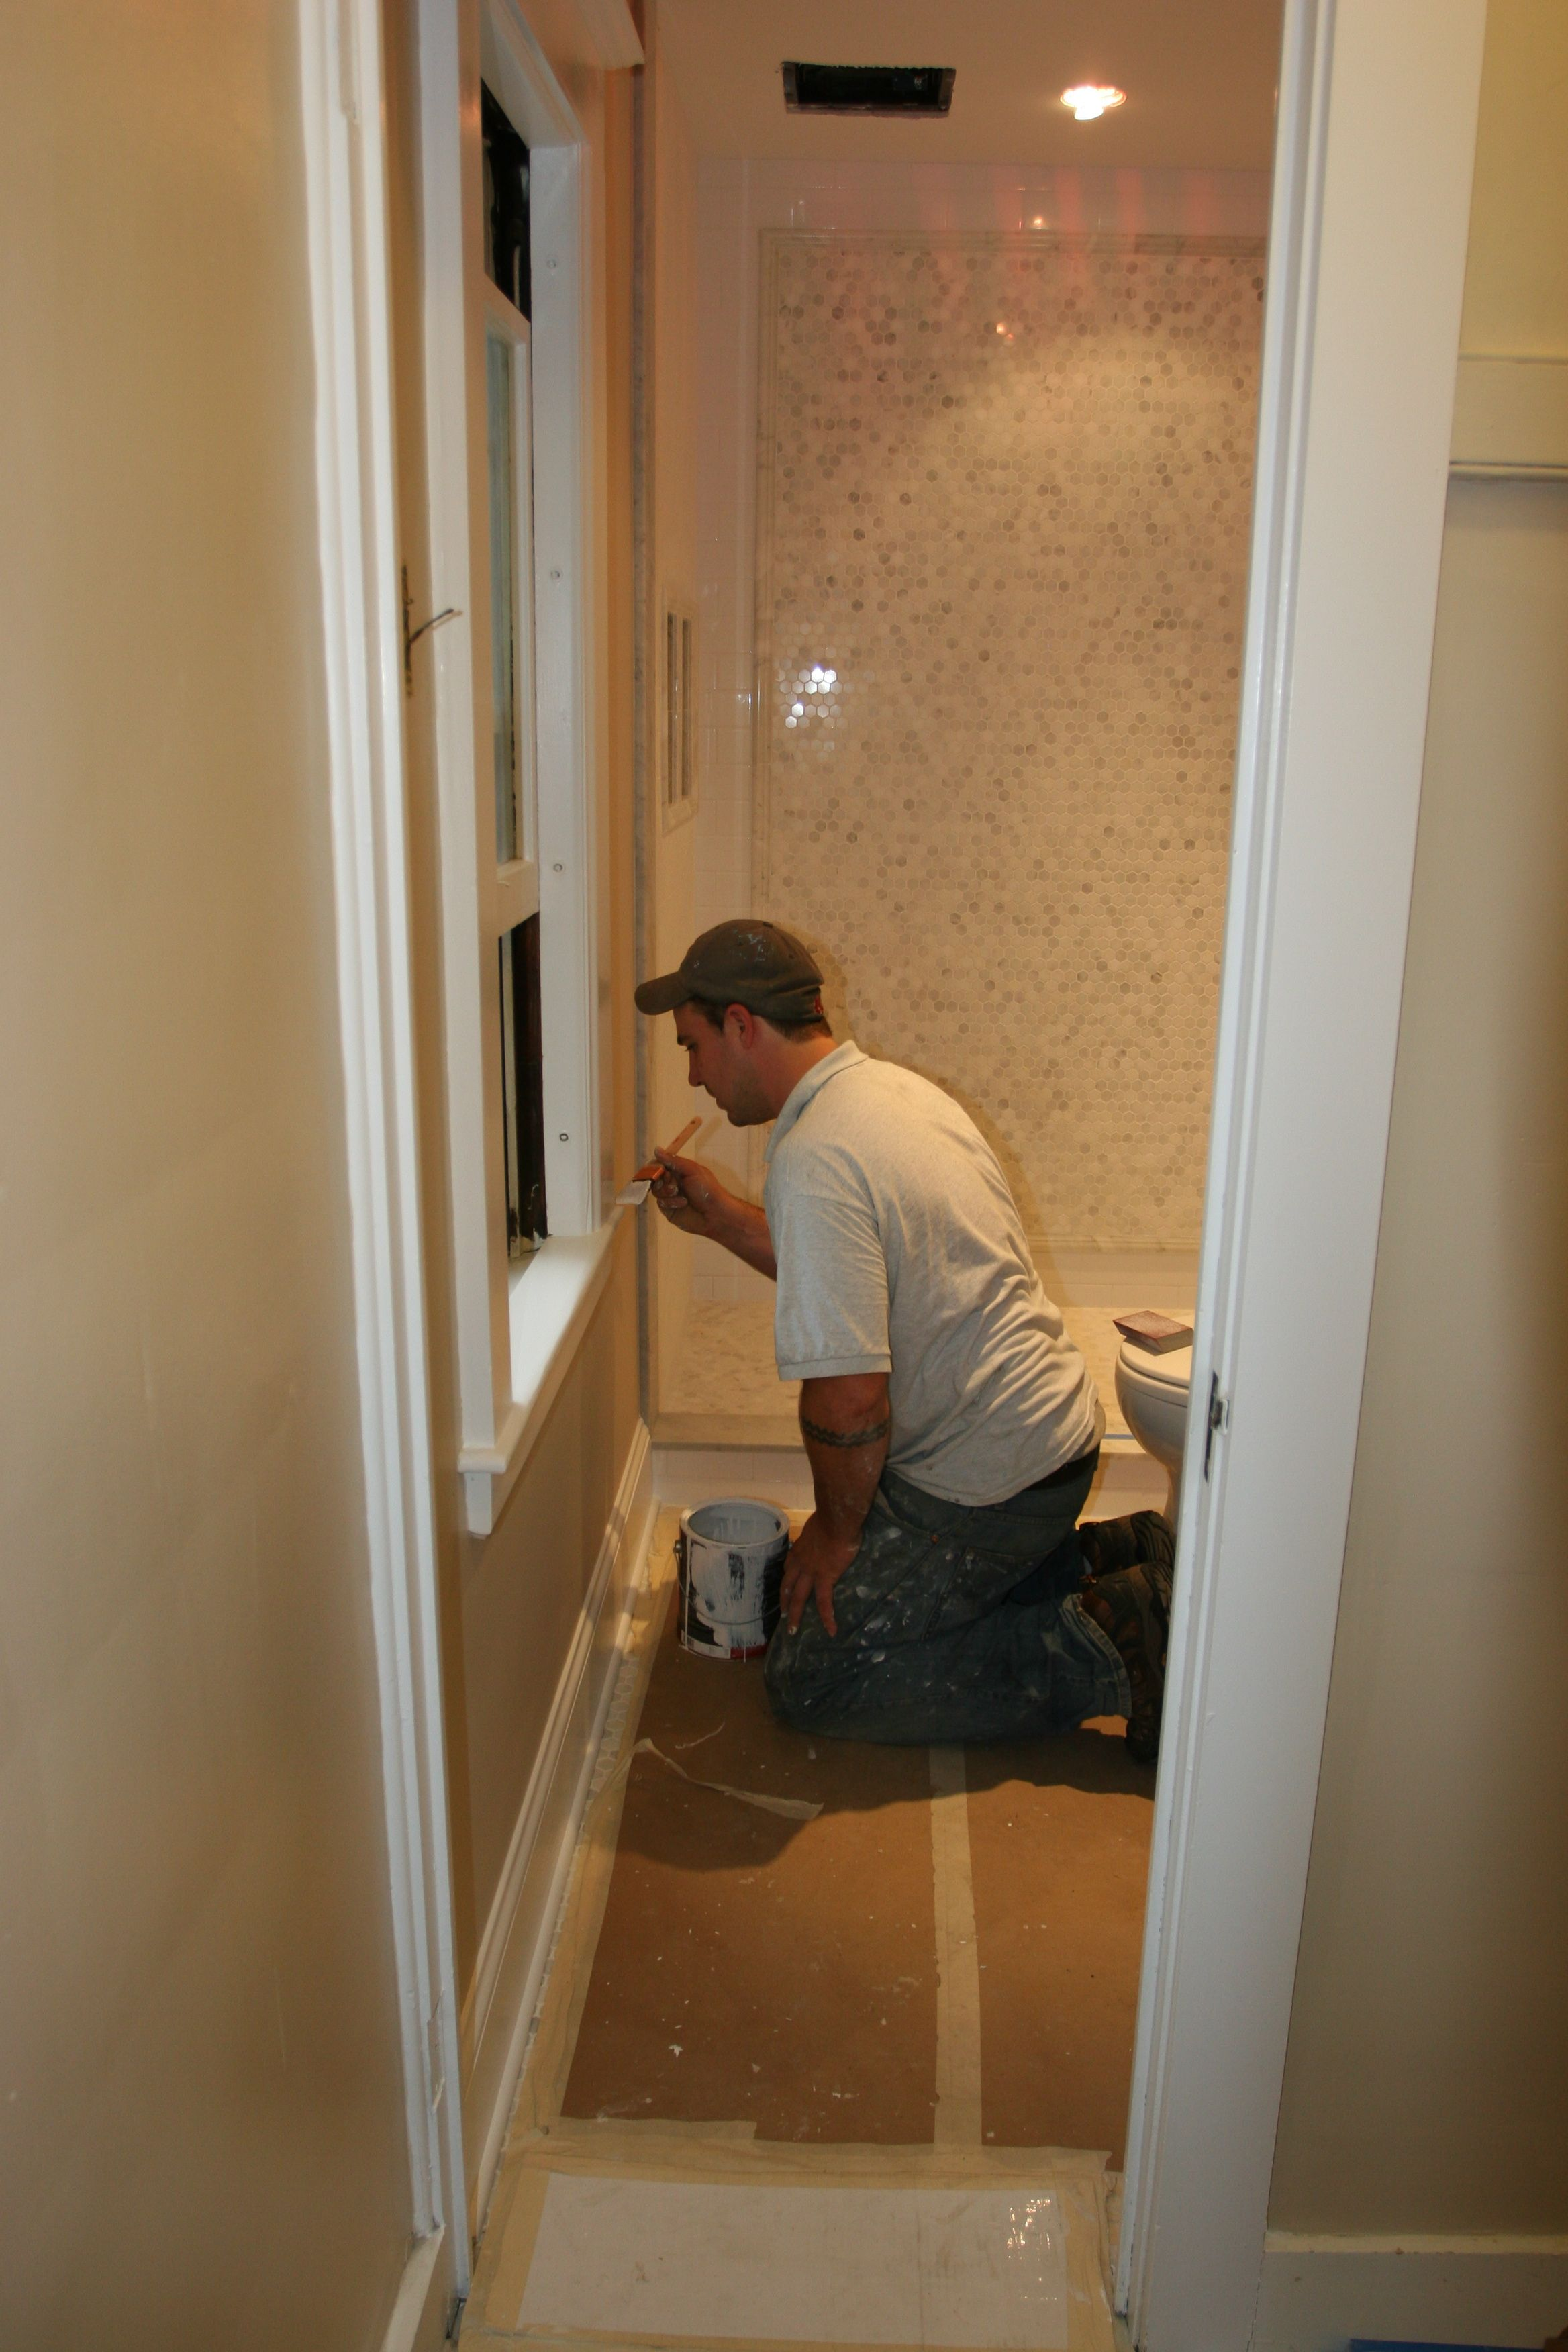 Taking care to perfect every nook and cranny.